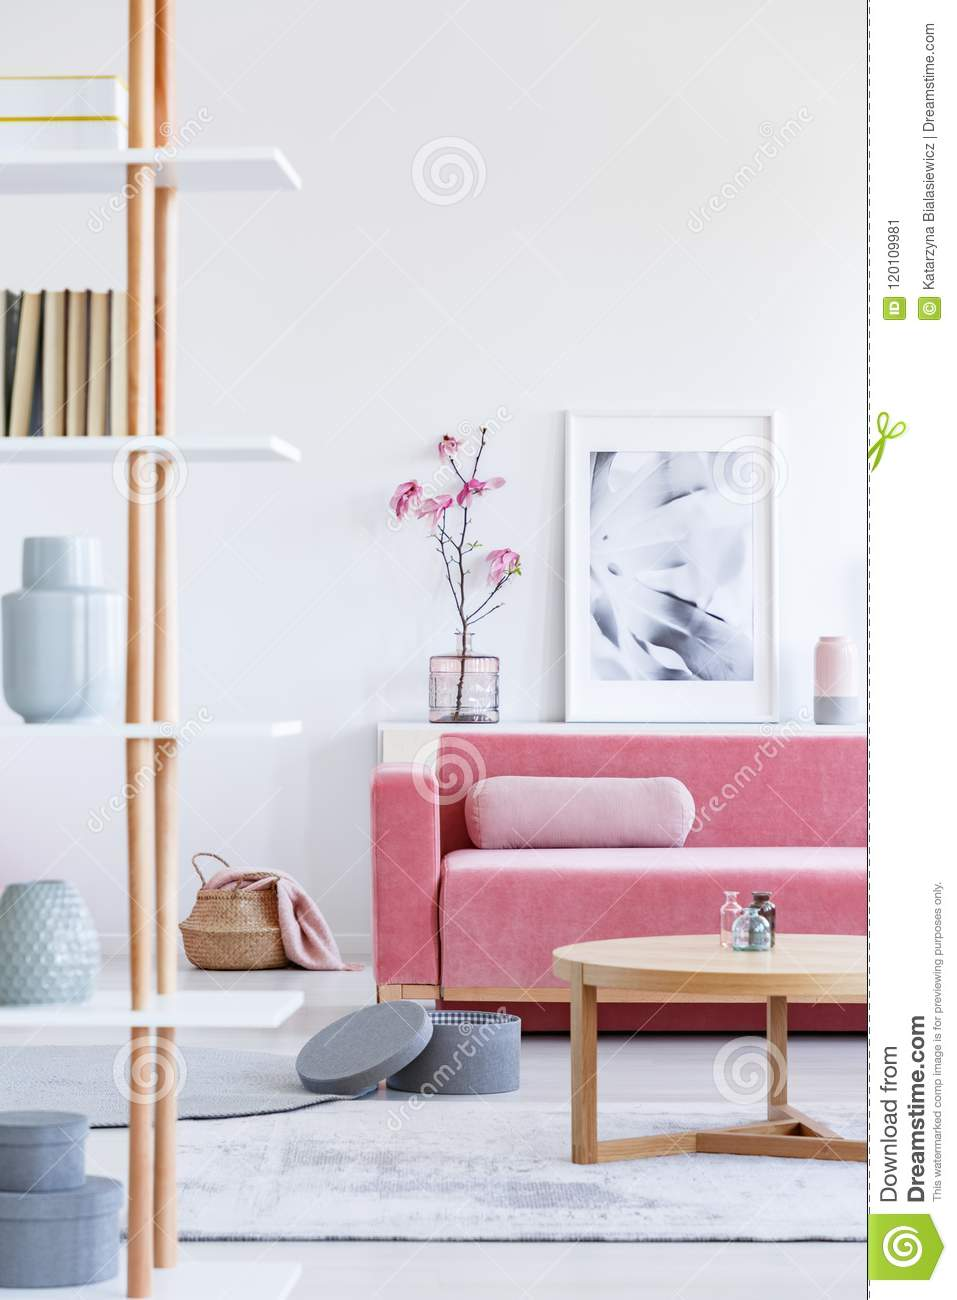 Real photo of a pink sofa with a cushion standing behind a wooden table and in front of a shelf with a poster and flowers in